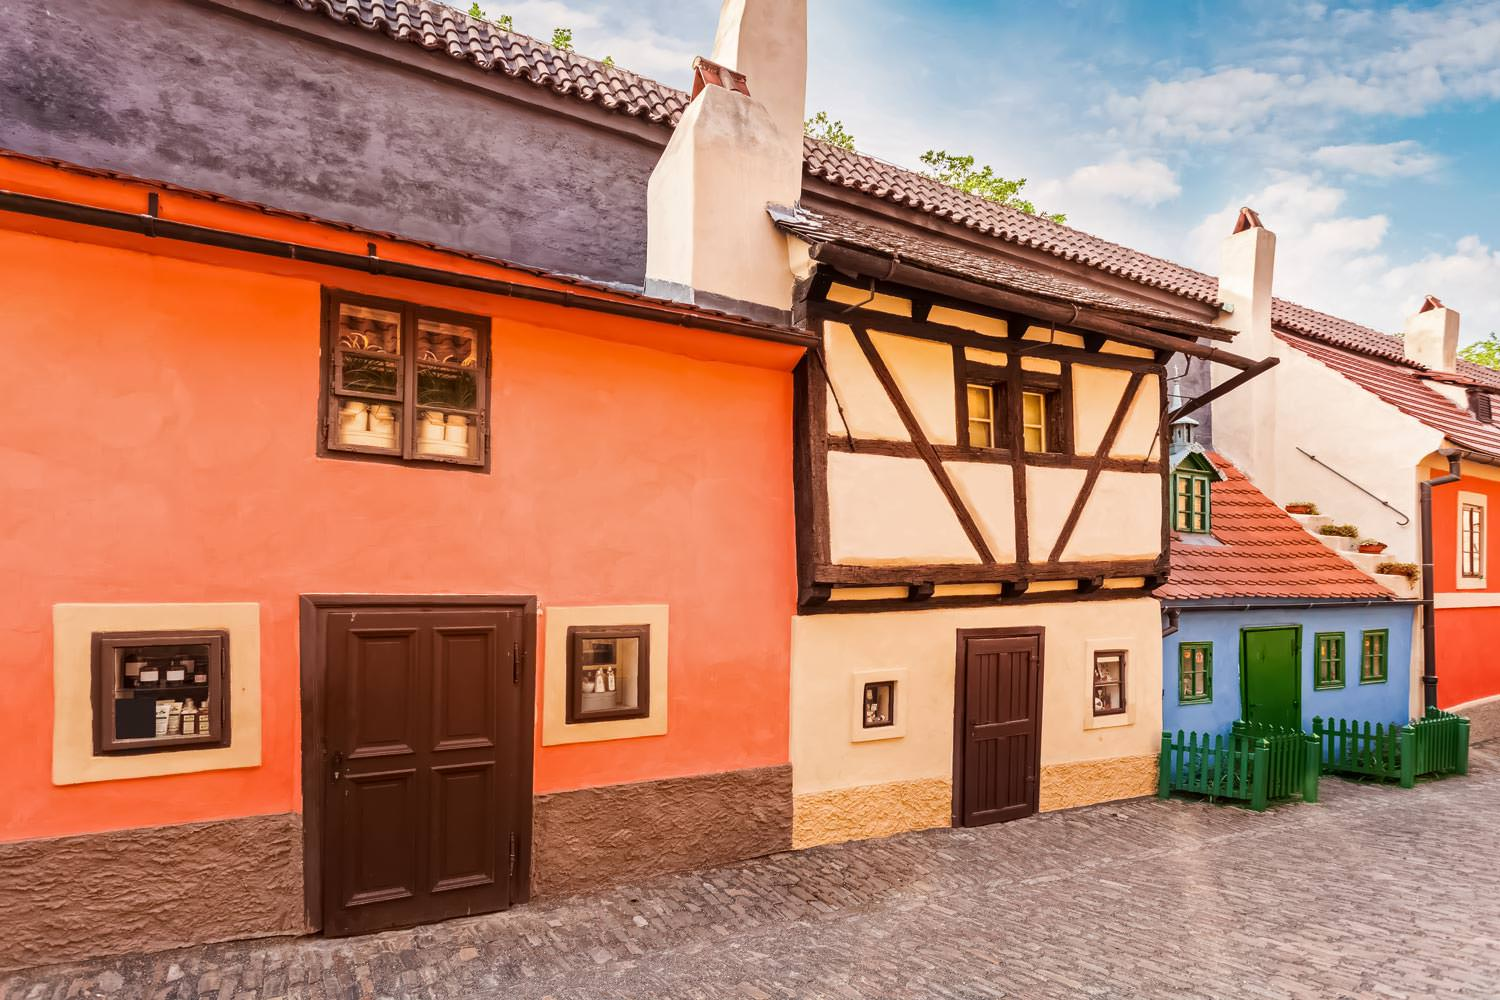 The Golden Lane in Prague, Czechia